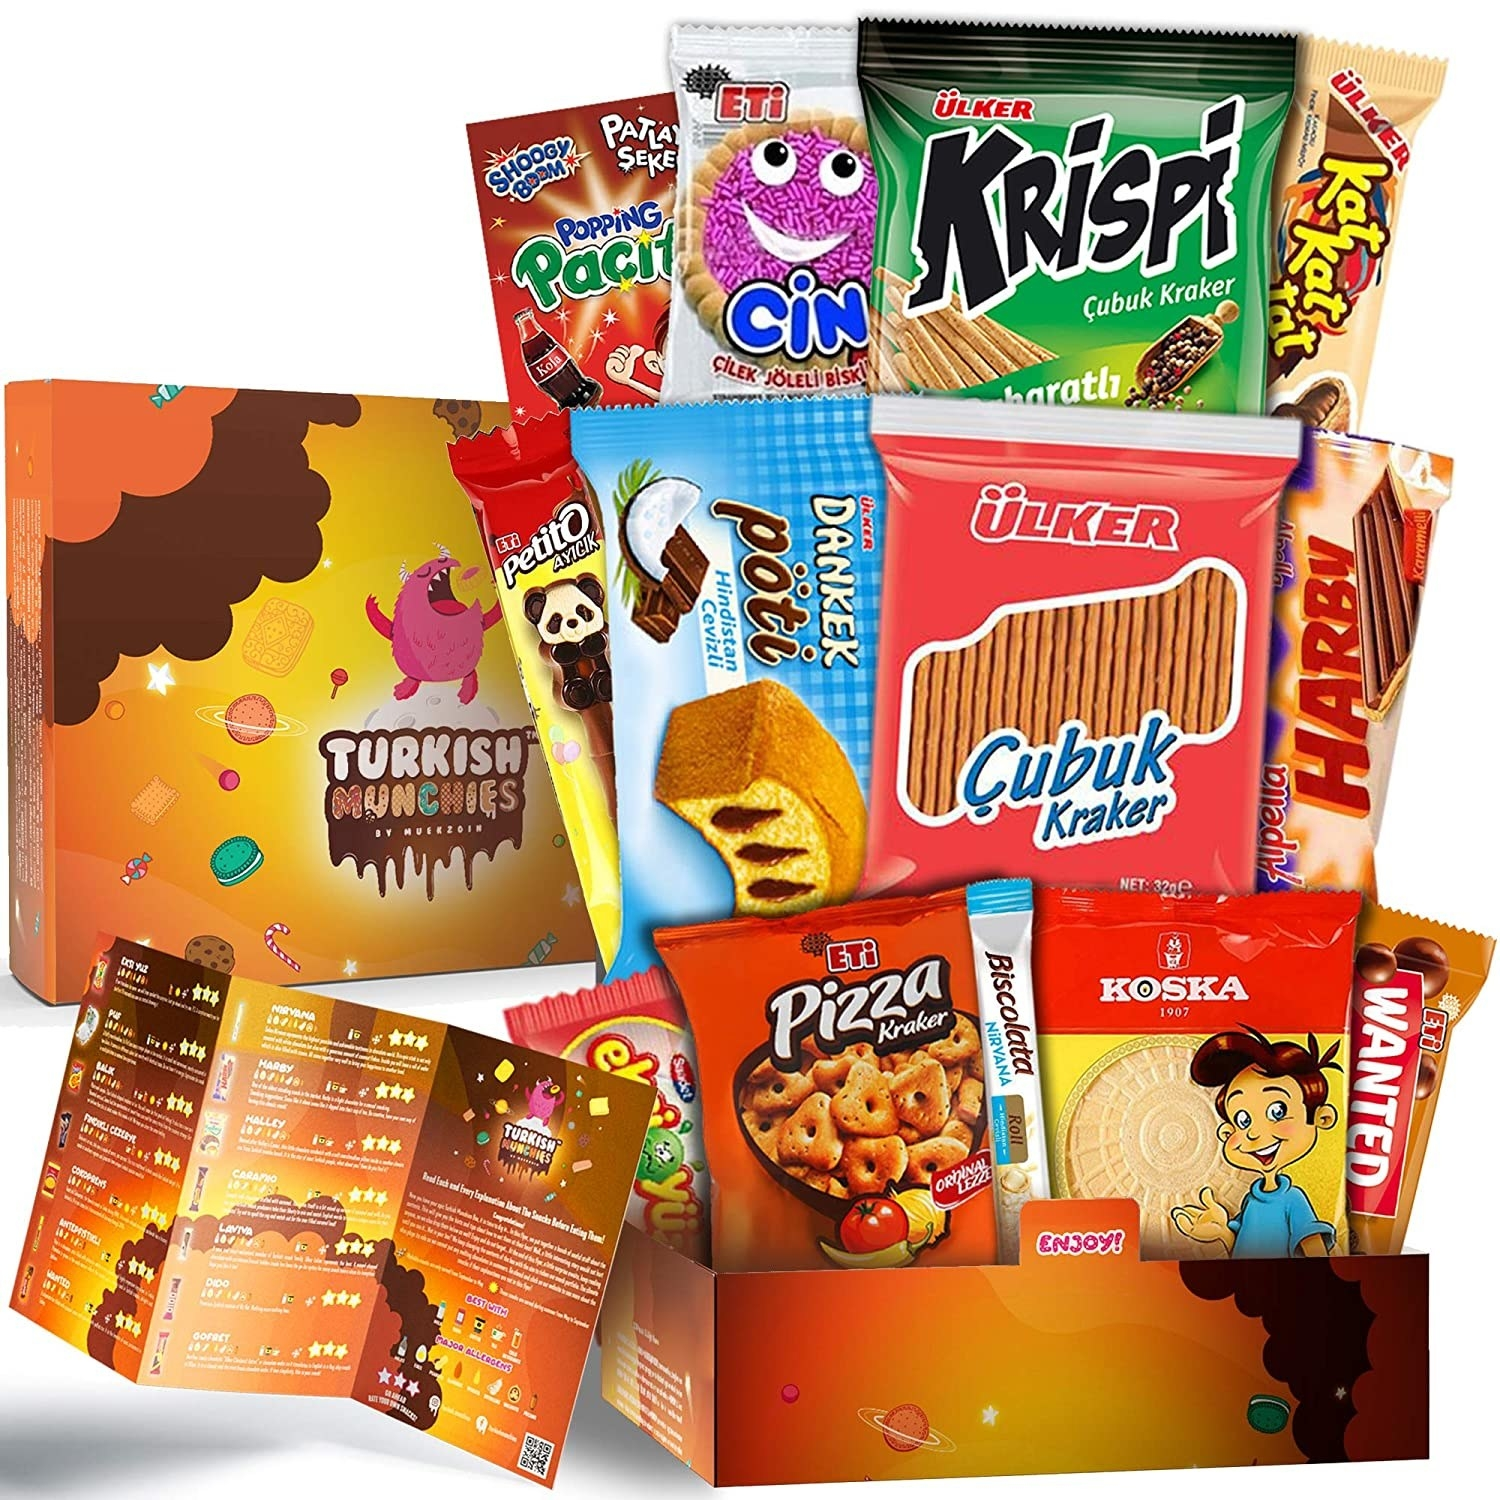 A package full of international snacks like biscuits, Turkish Munchies, and chocolates